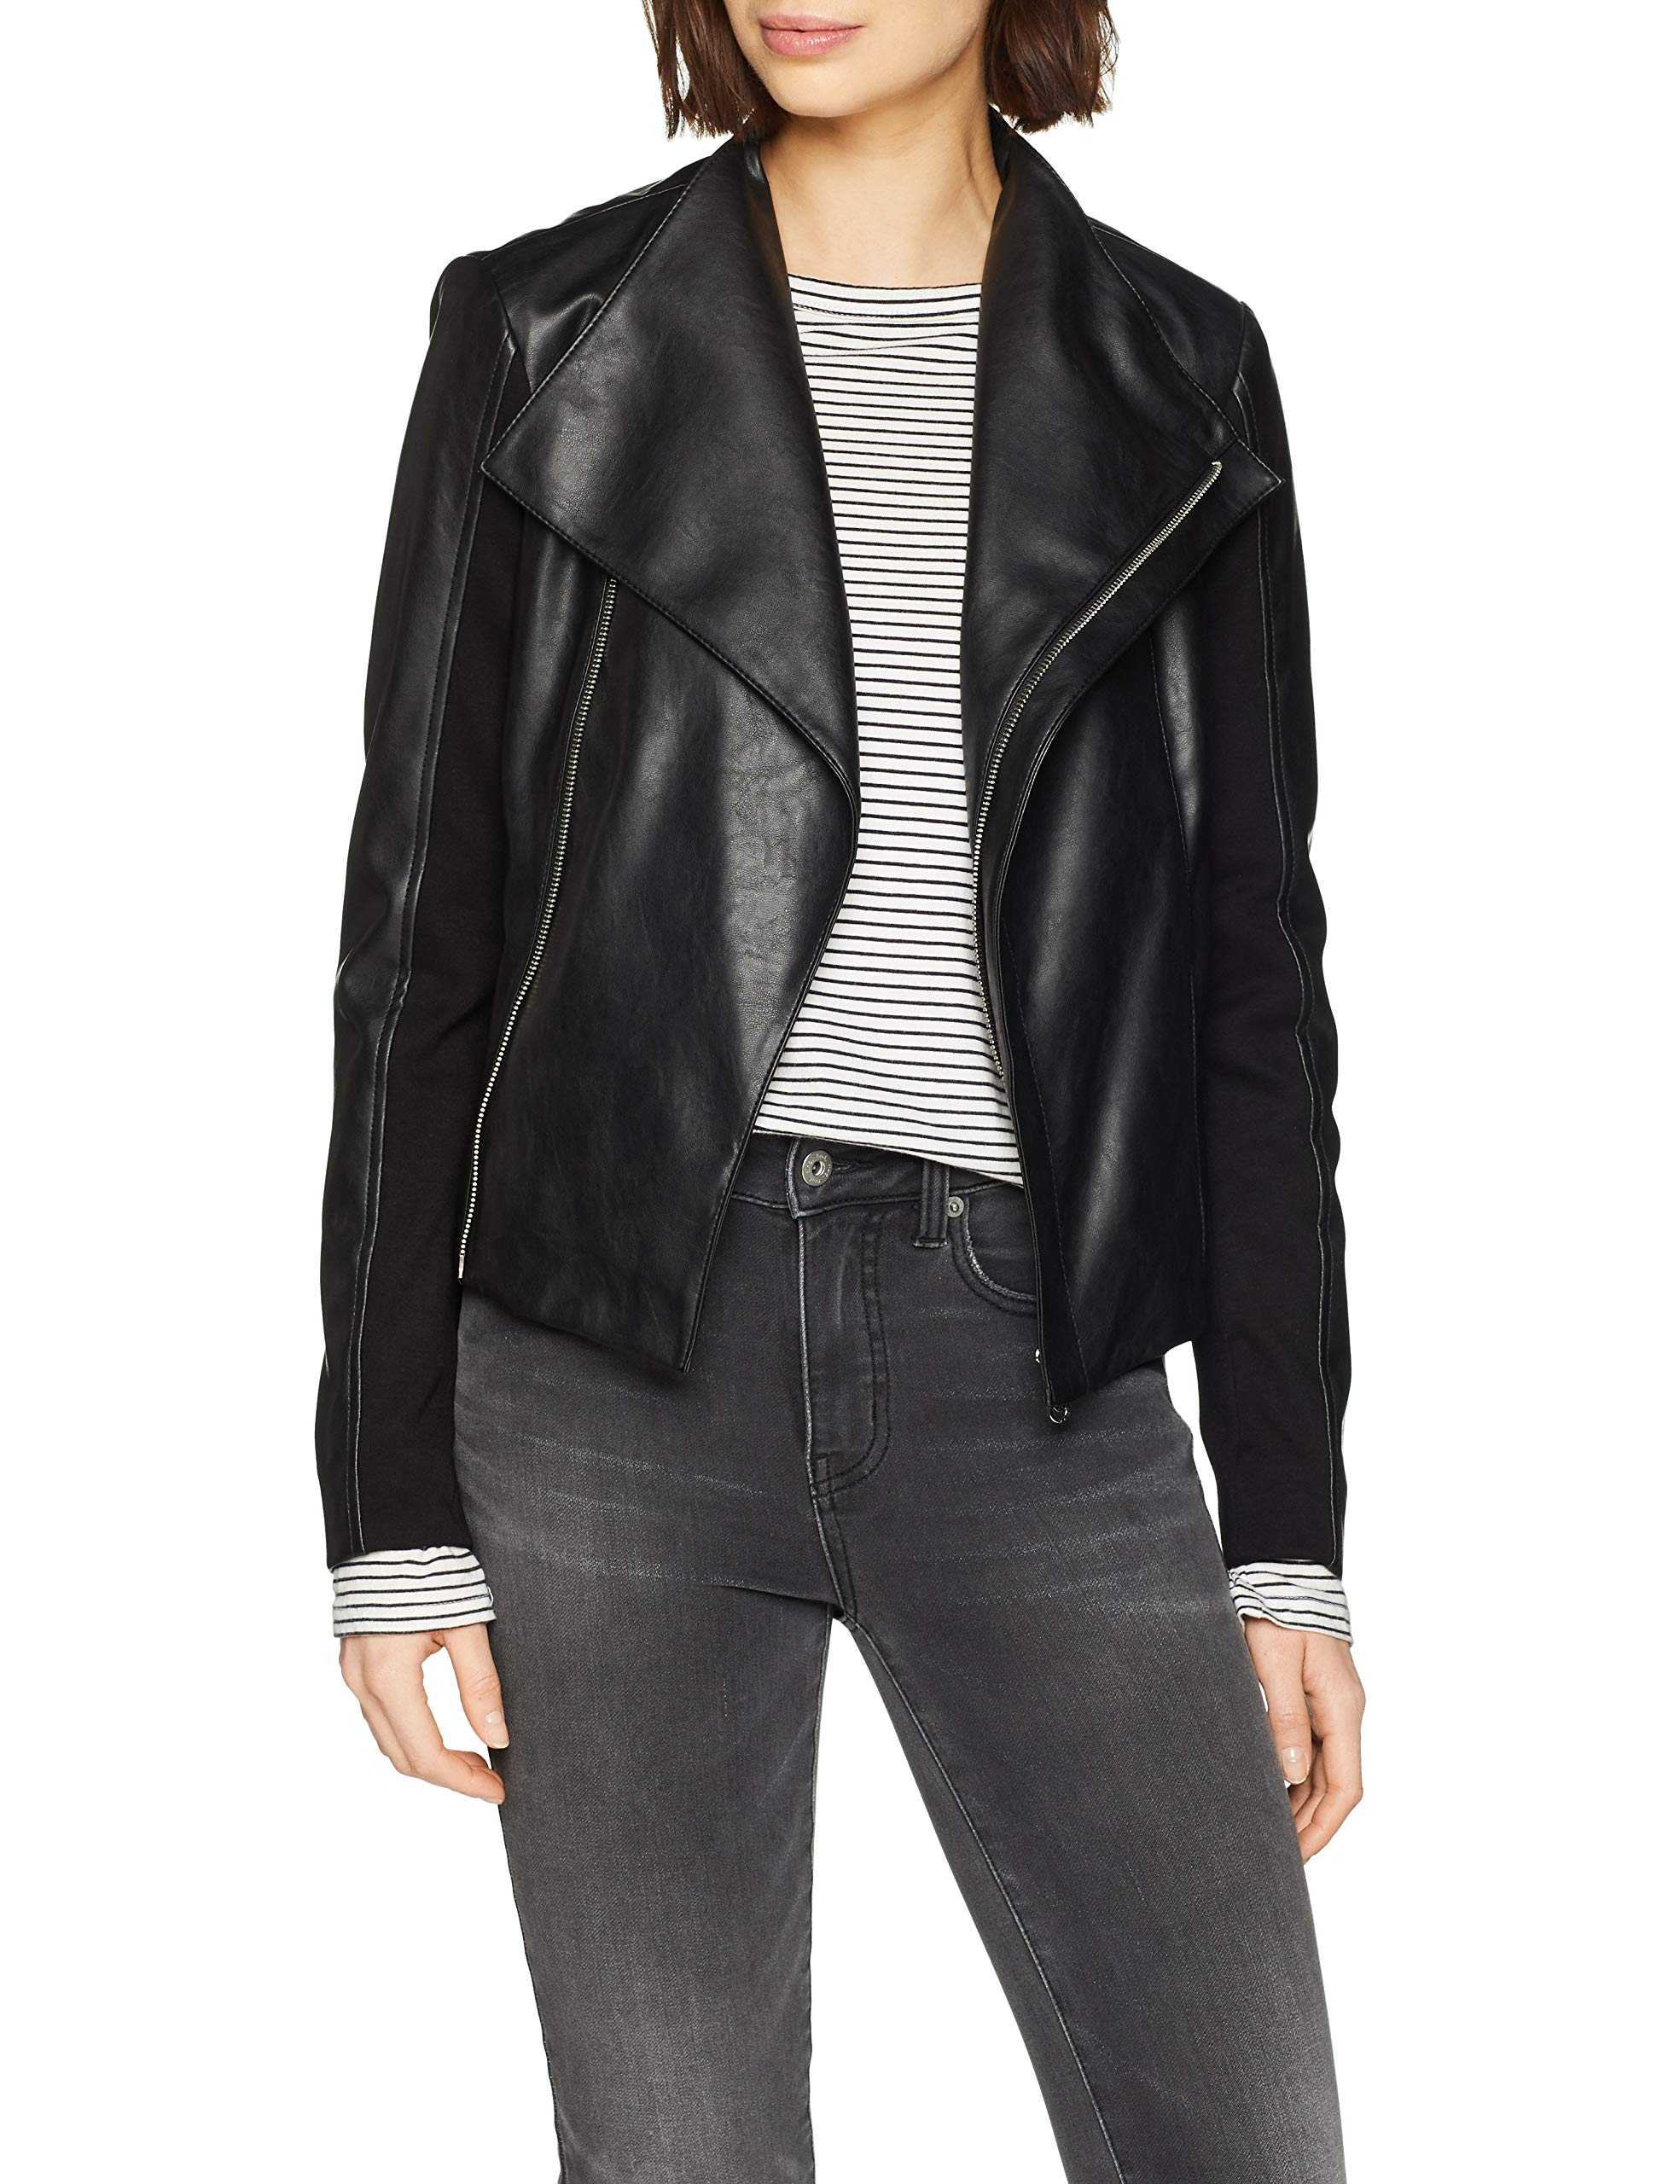 Slim Jeans Soft K29936taille Ecoleather Trussardi Fabricant40Femme black Motorcycle BomberNoirk299 Fit Jacket Veste Ivgf6yYb7